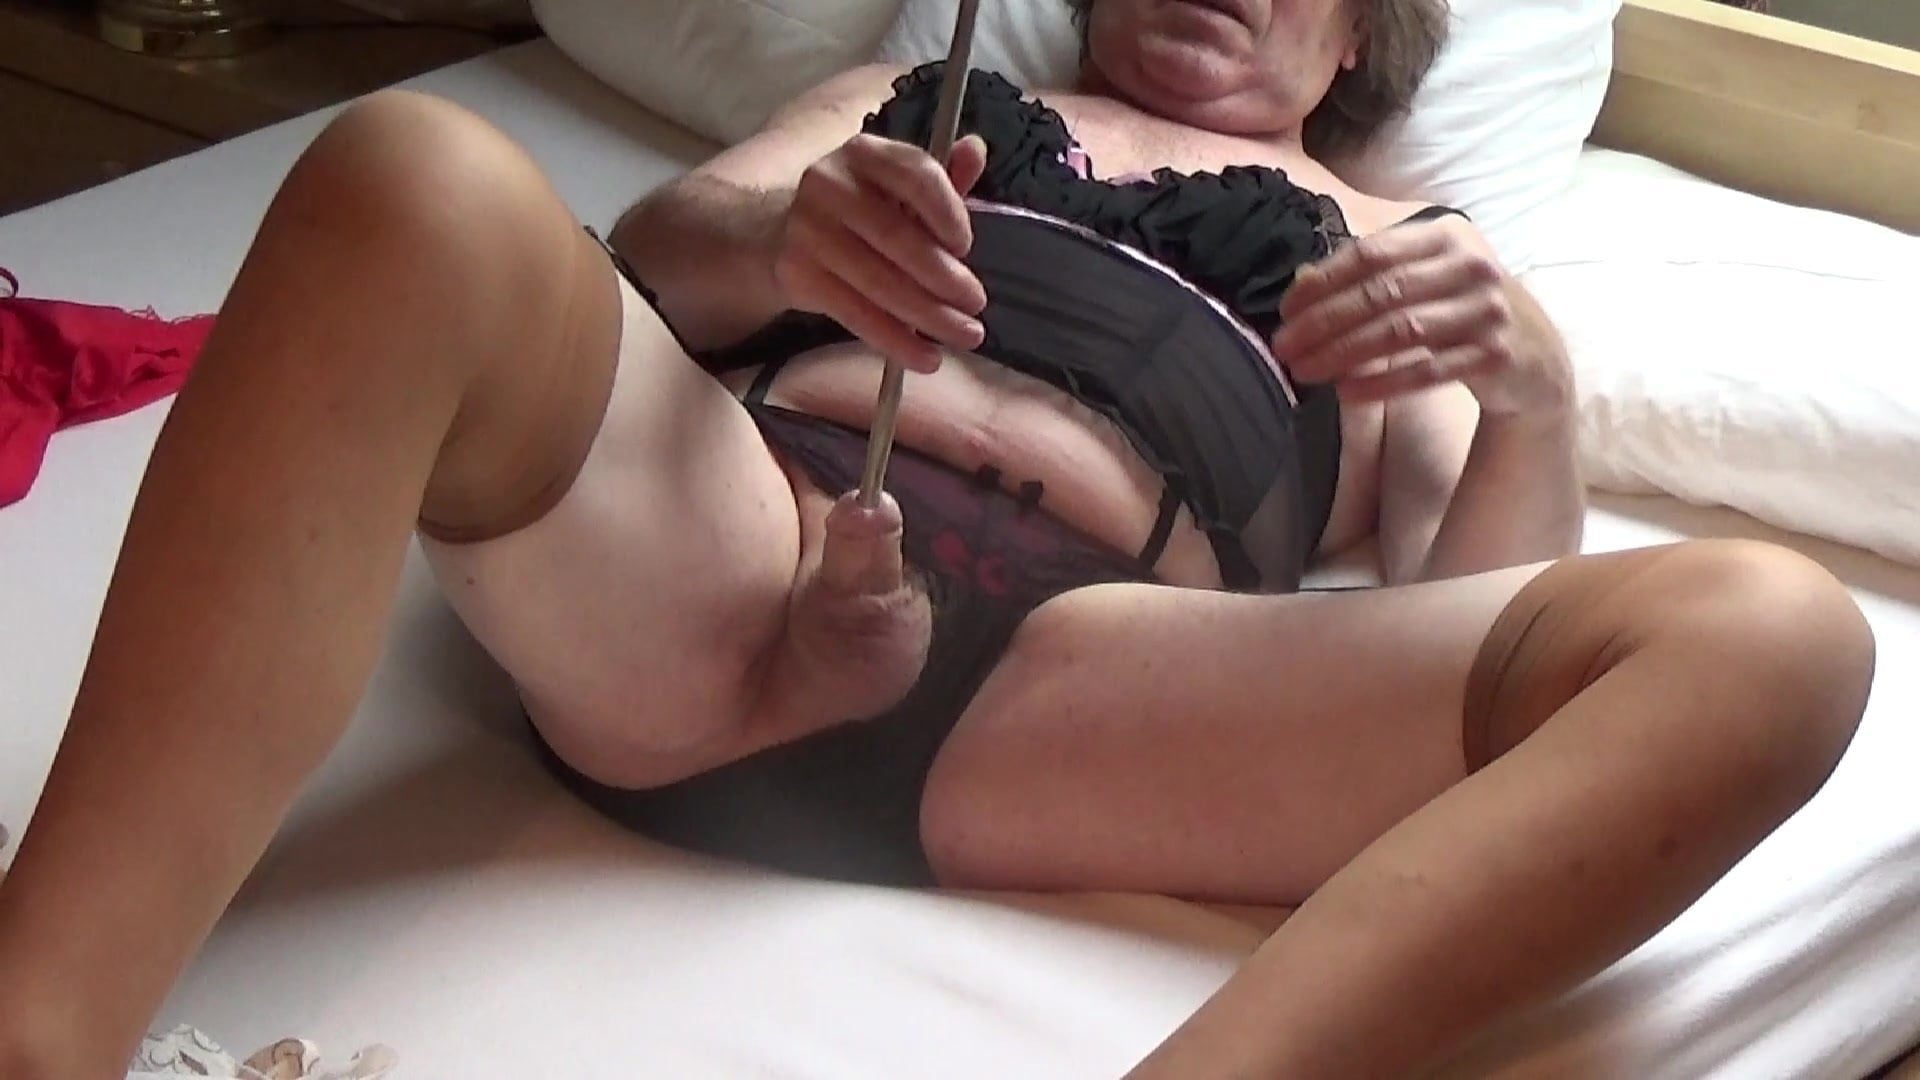 Shemale Tranny Sissy Sounding Urethral Cock Lingerie Outdoor